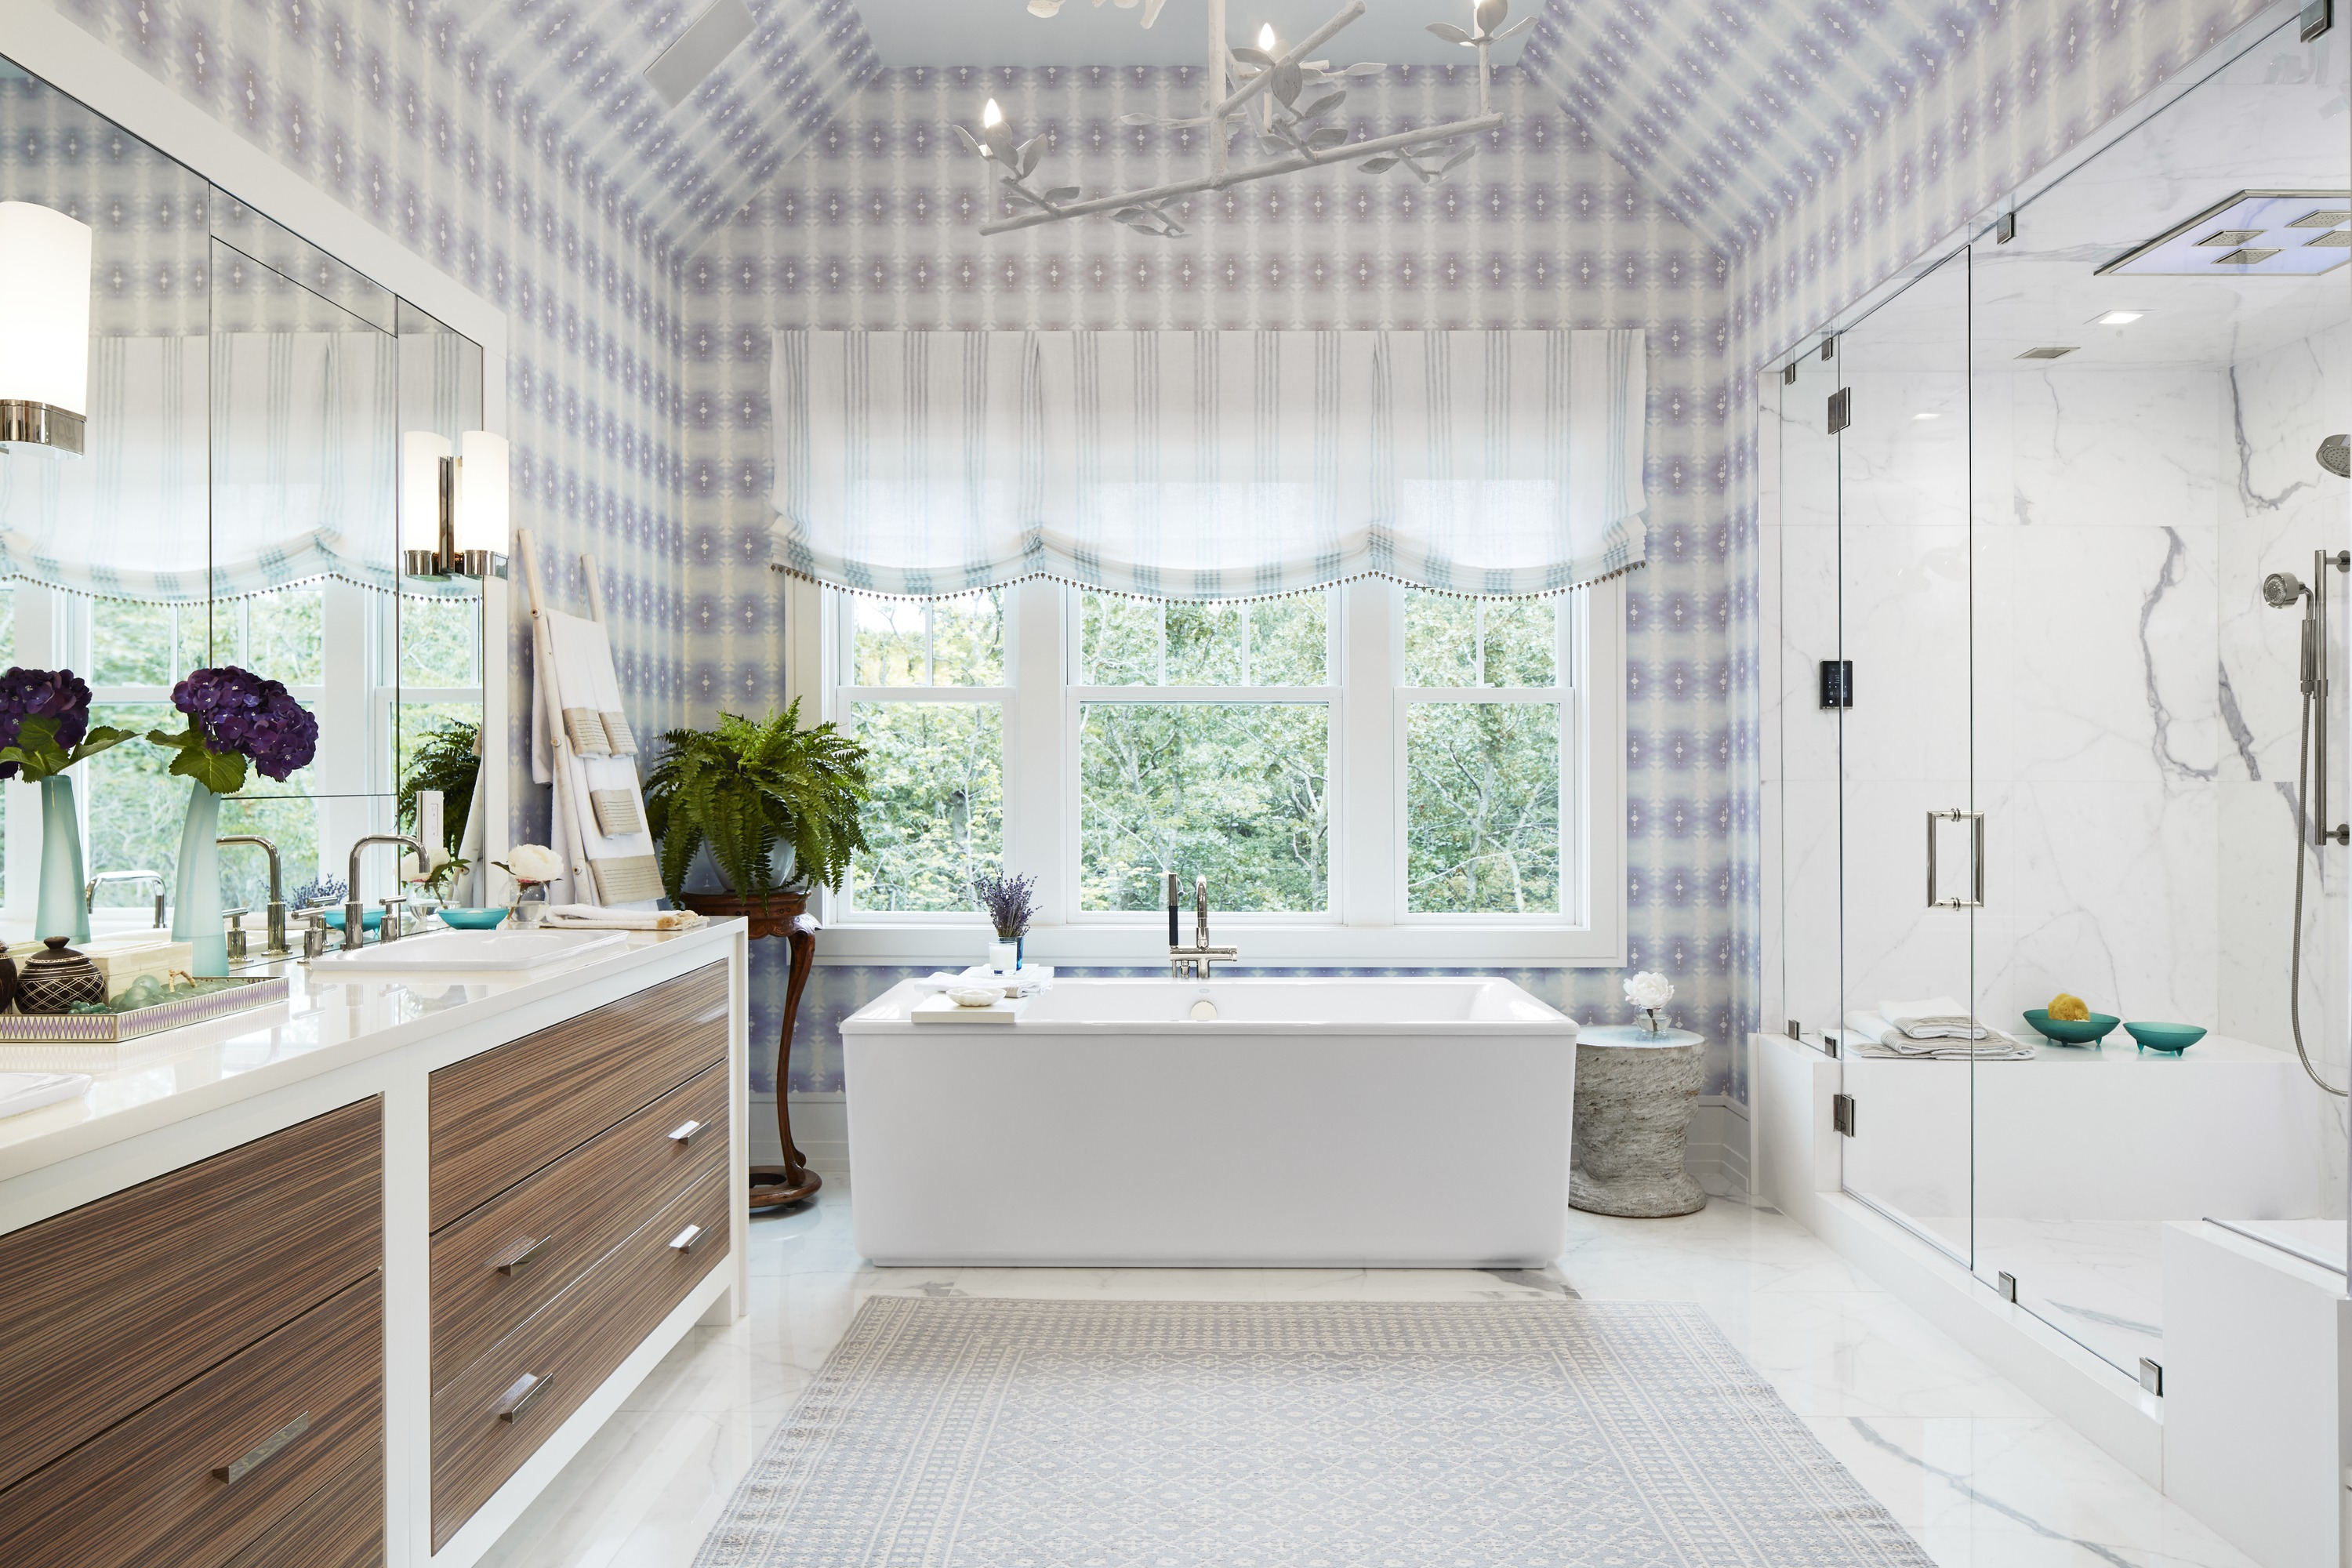 Purist Bath Filler     Stargaze Freestanding Bath     Purist Faucet     Sartorial Herringbone  Sink     Liliane Hart's master bathroom embraces traditional design but in a very 21st-century style. Updated gingham wallcoverings evoke the familiar while advanced technologies bring contemporary personalization.